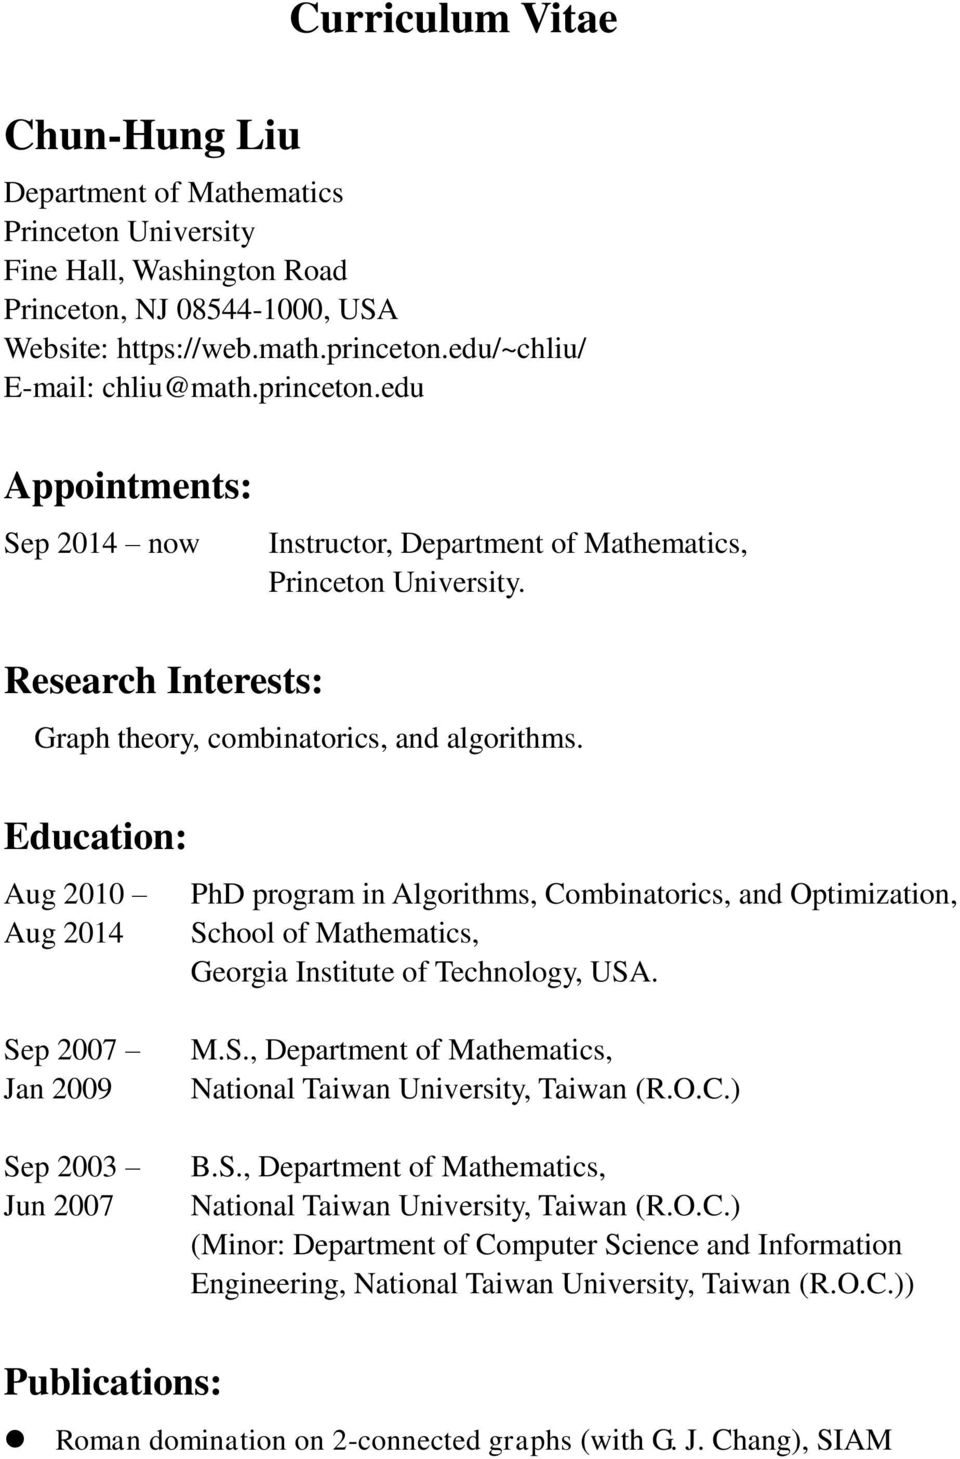 Education: Aug 2010 Aug 2014 PhD program in Algorithms, Combinatorics, and Optimization, School of Mathematics, Georgia Institute of Technology, USA. Sep 2007 Jan 2009 Sep 2003 Jun 2007 M.S., Department of Mathematics, National Taiwan University, Taiwan (R.